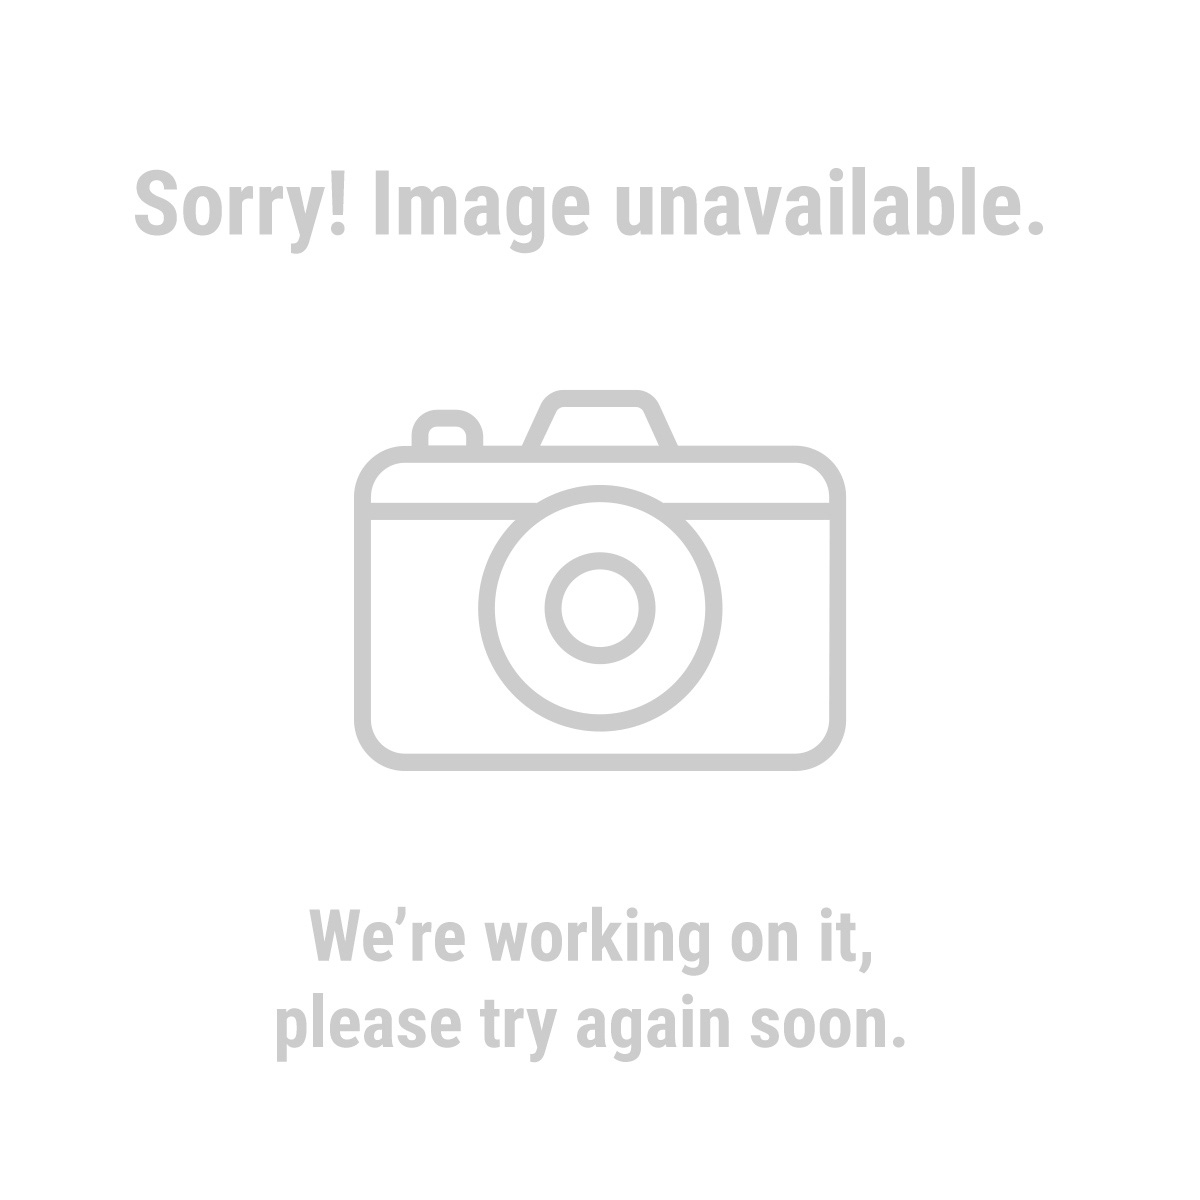 "Chicago Electric Welding Systems 42919 0.030"" ER70S-6  Carbon Steel Welding Wire, 10 Lb. Roll"